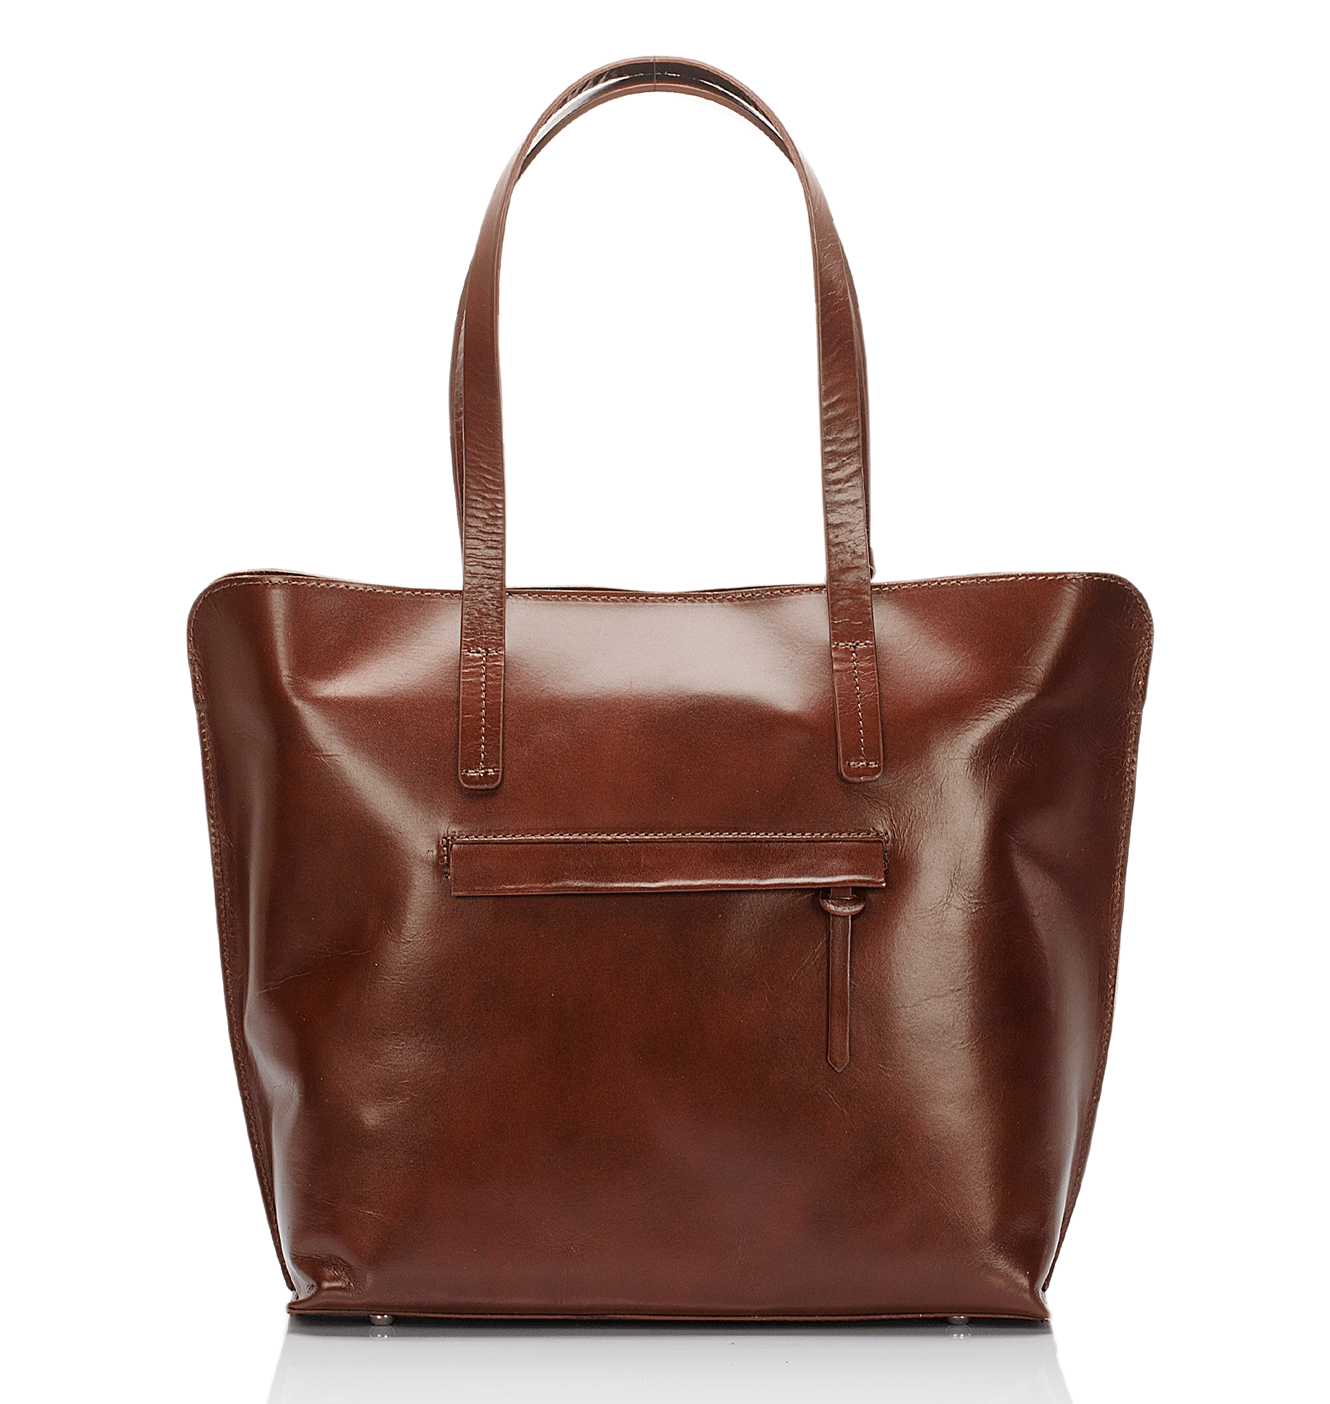 Market Tote - Saddle Brown